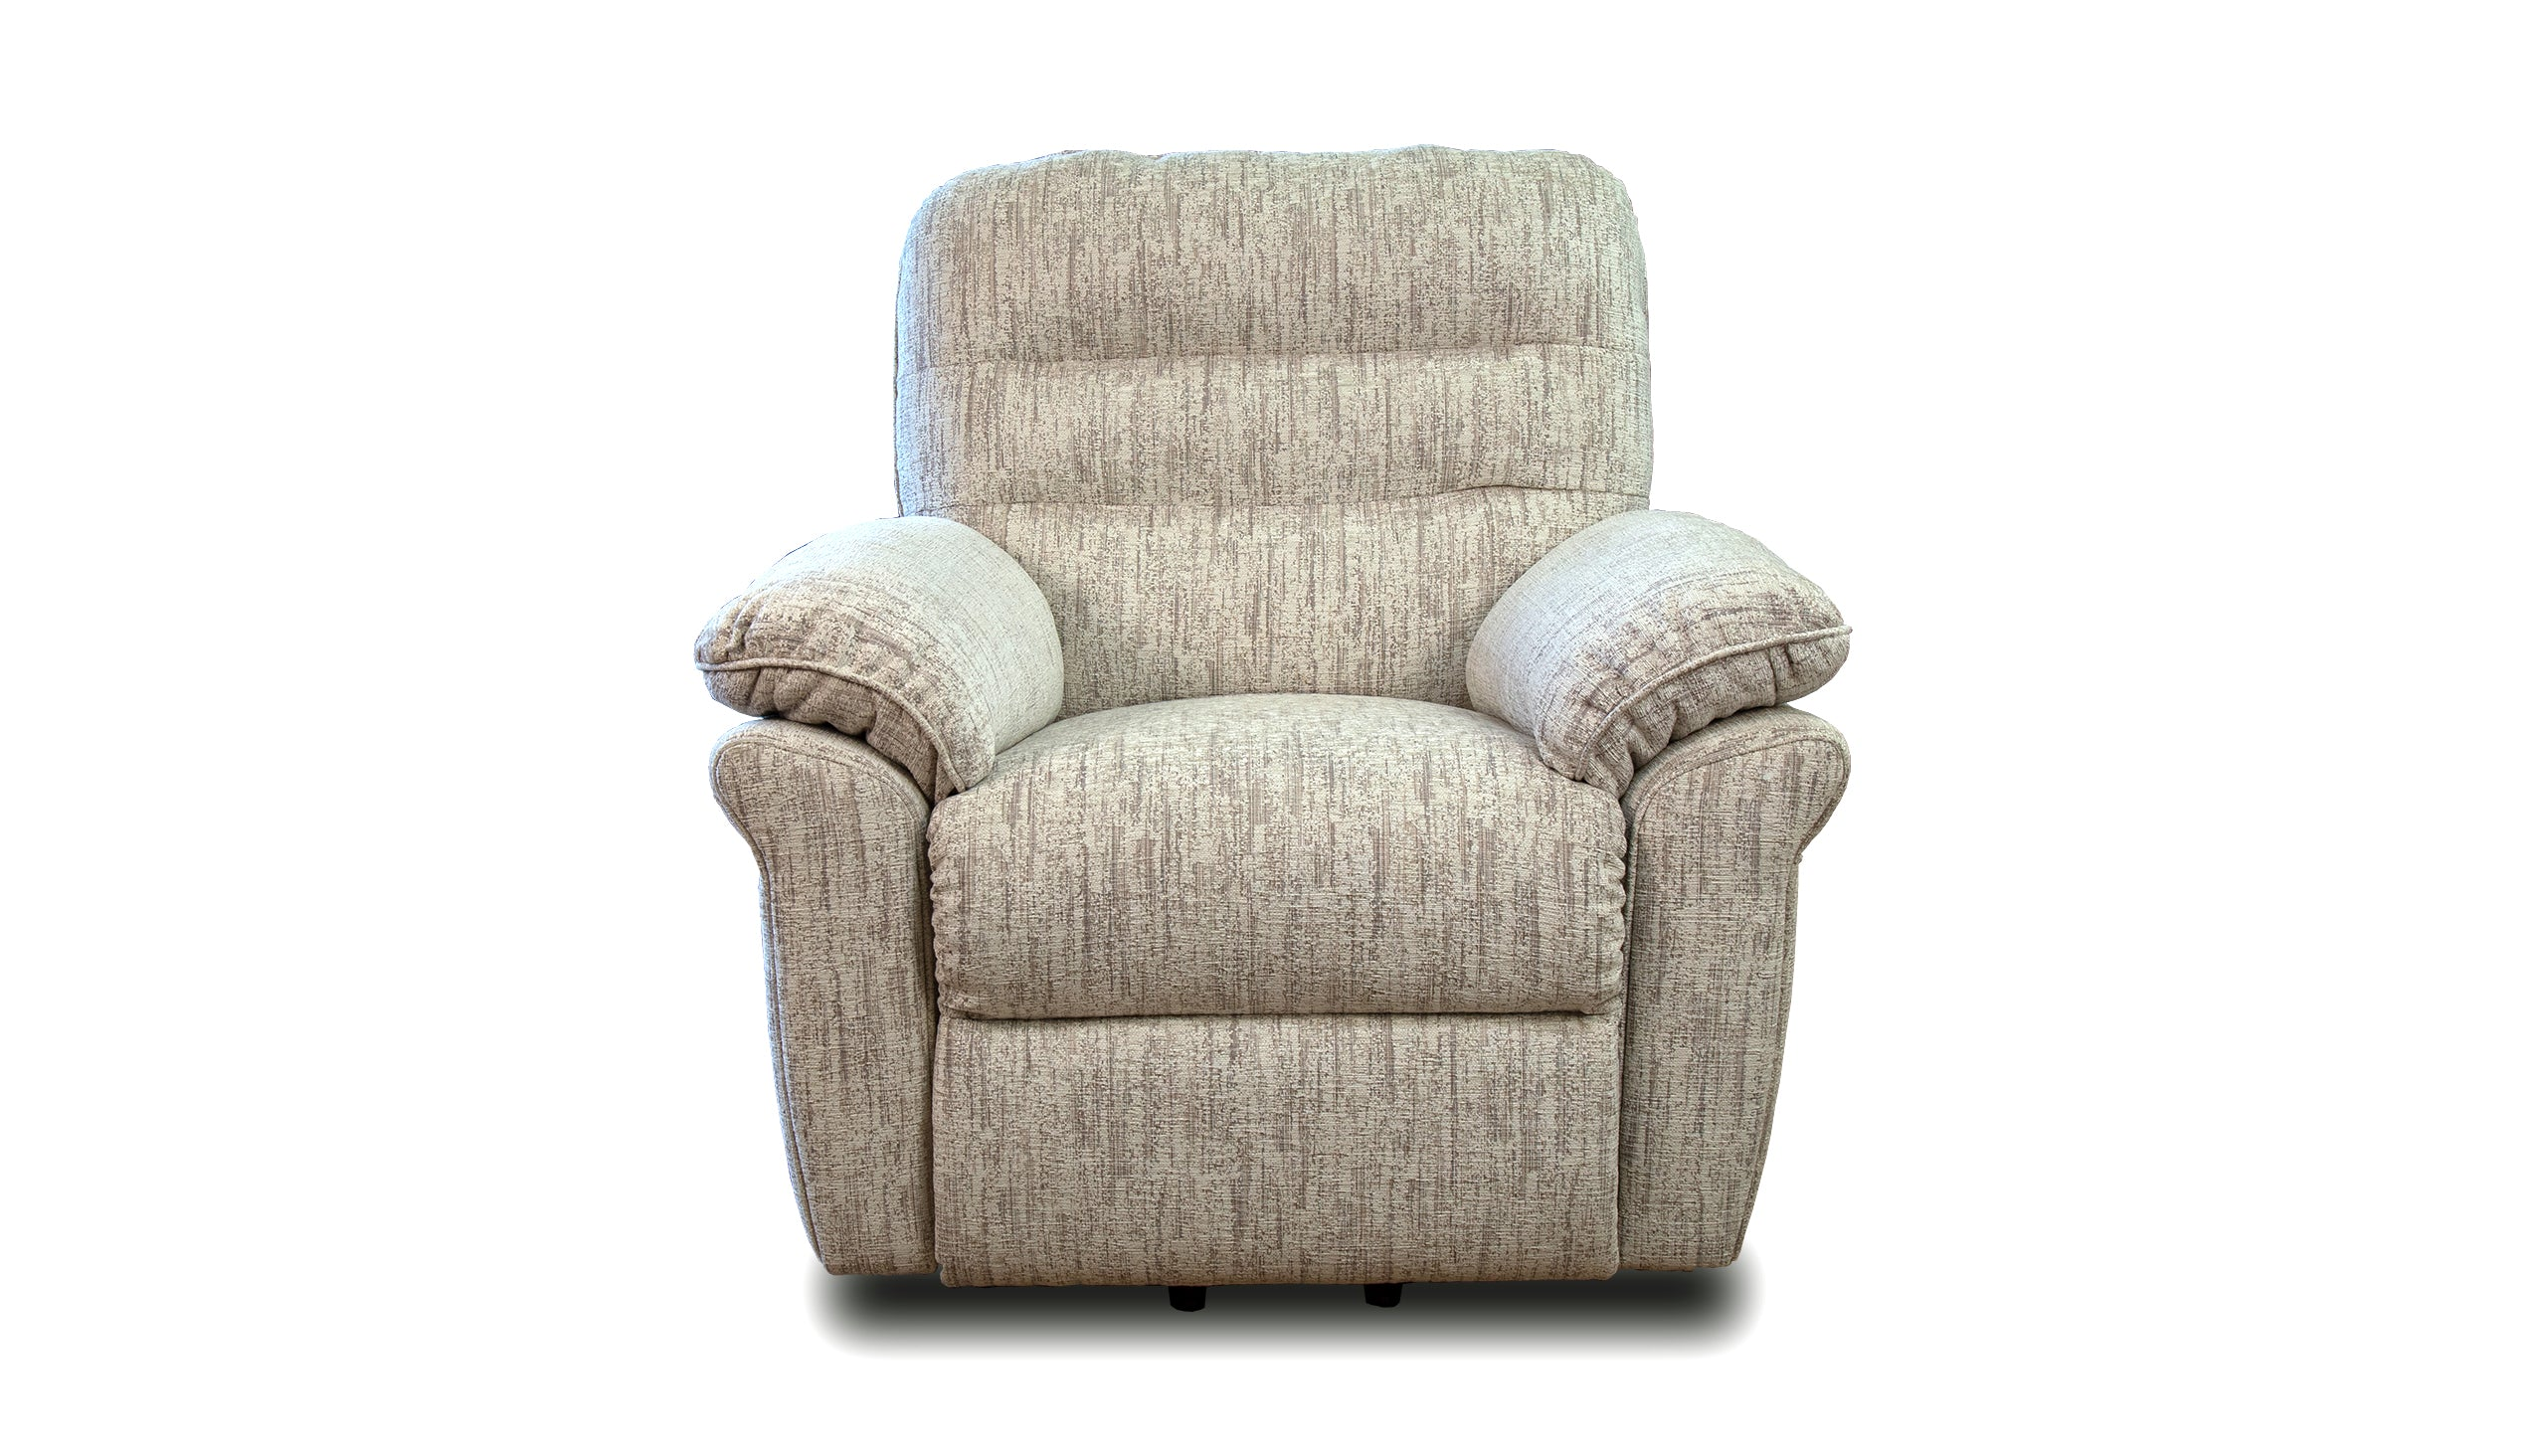 Kendal Lift and Rise Recliner Chair